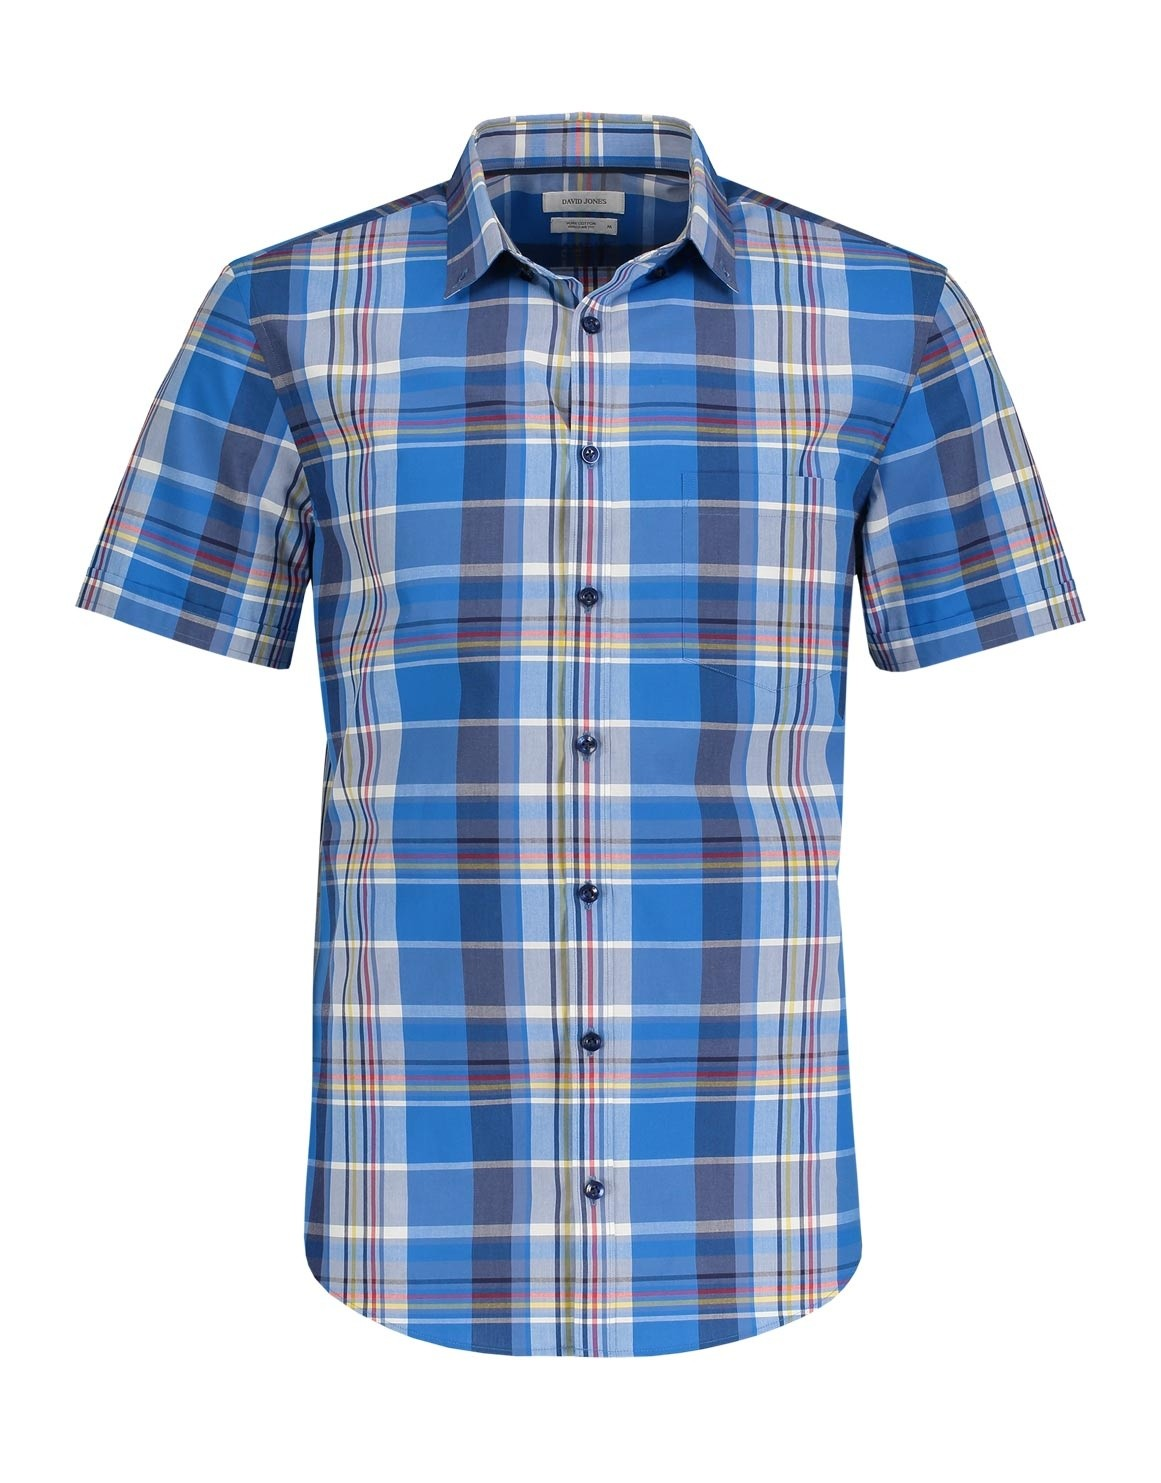 Blue-Check-Cotton-Shirt-6009207544267.jpg